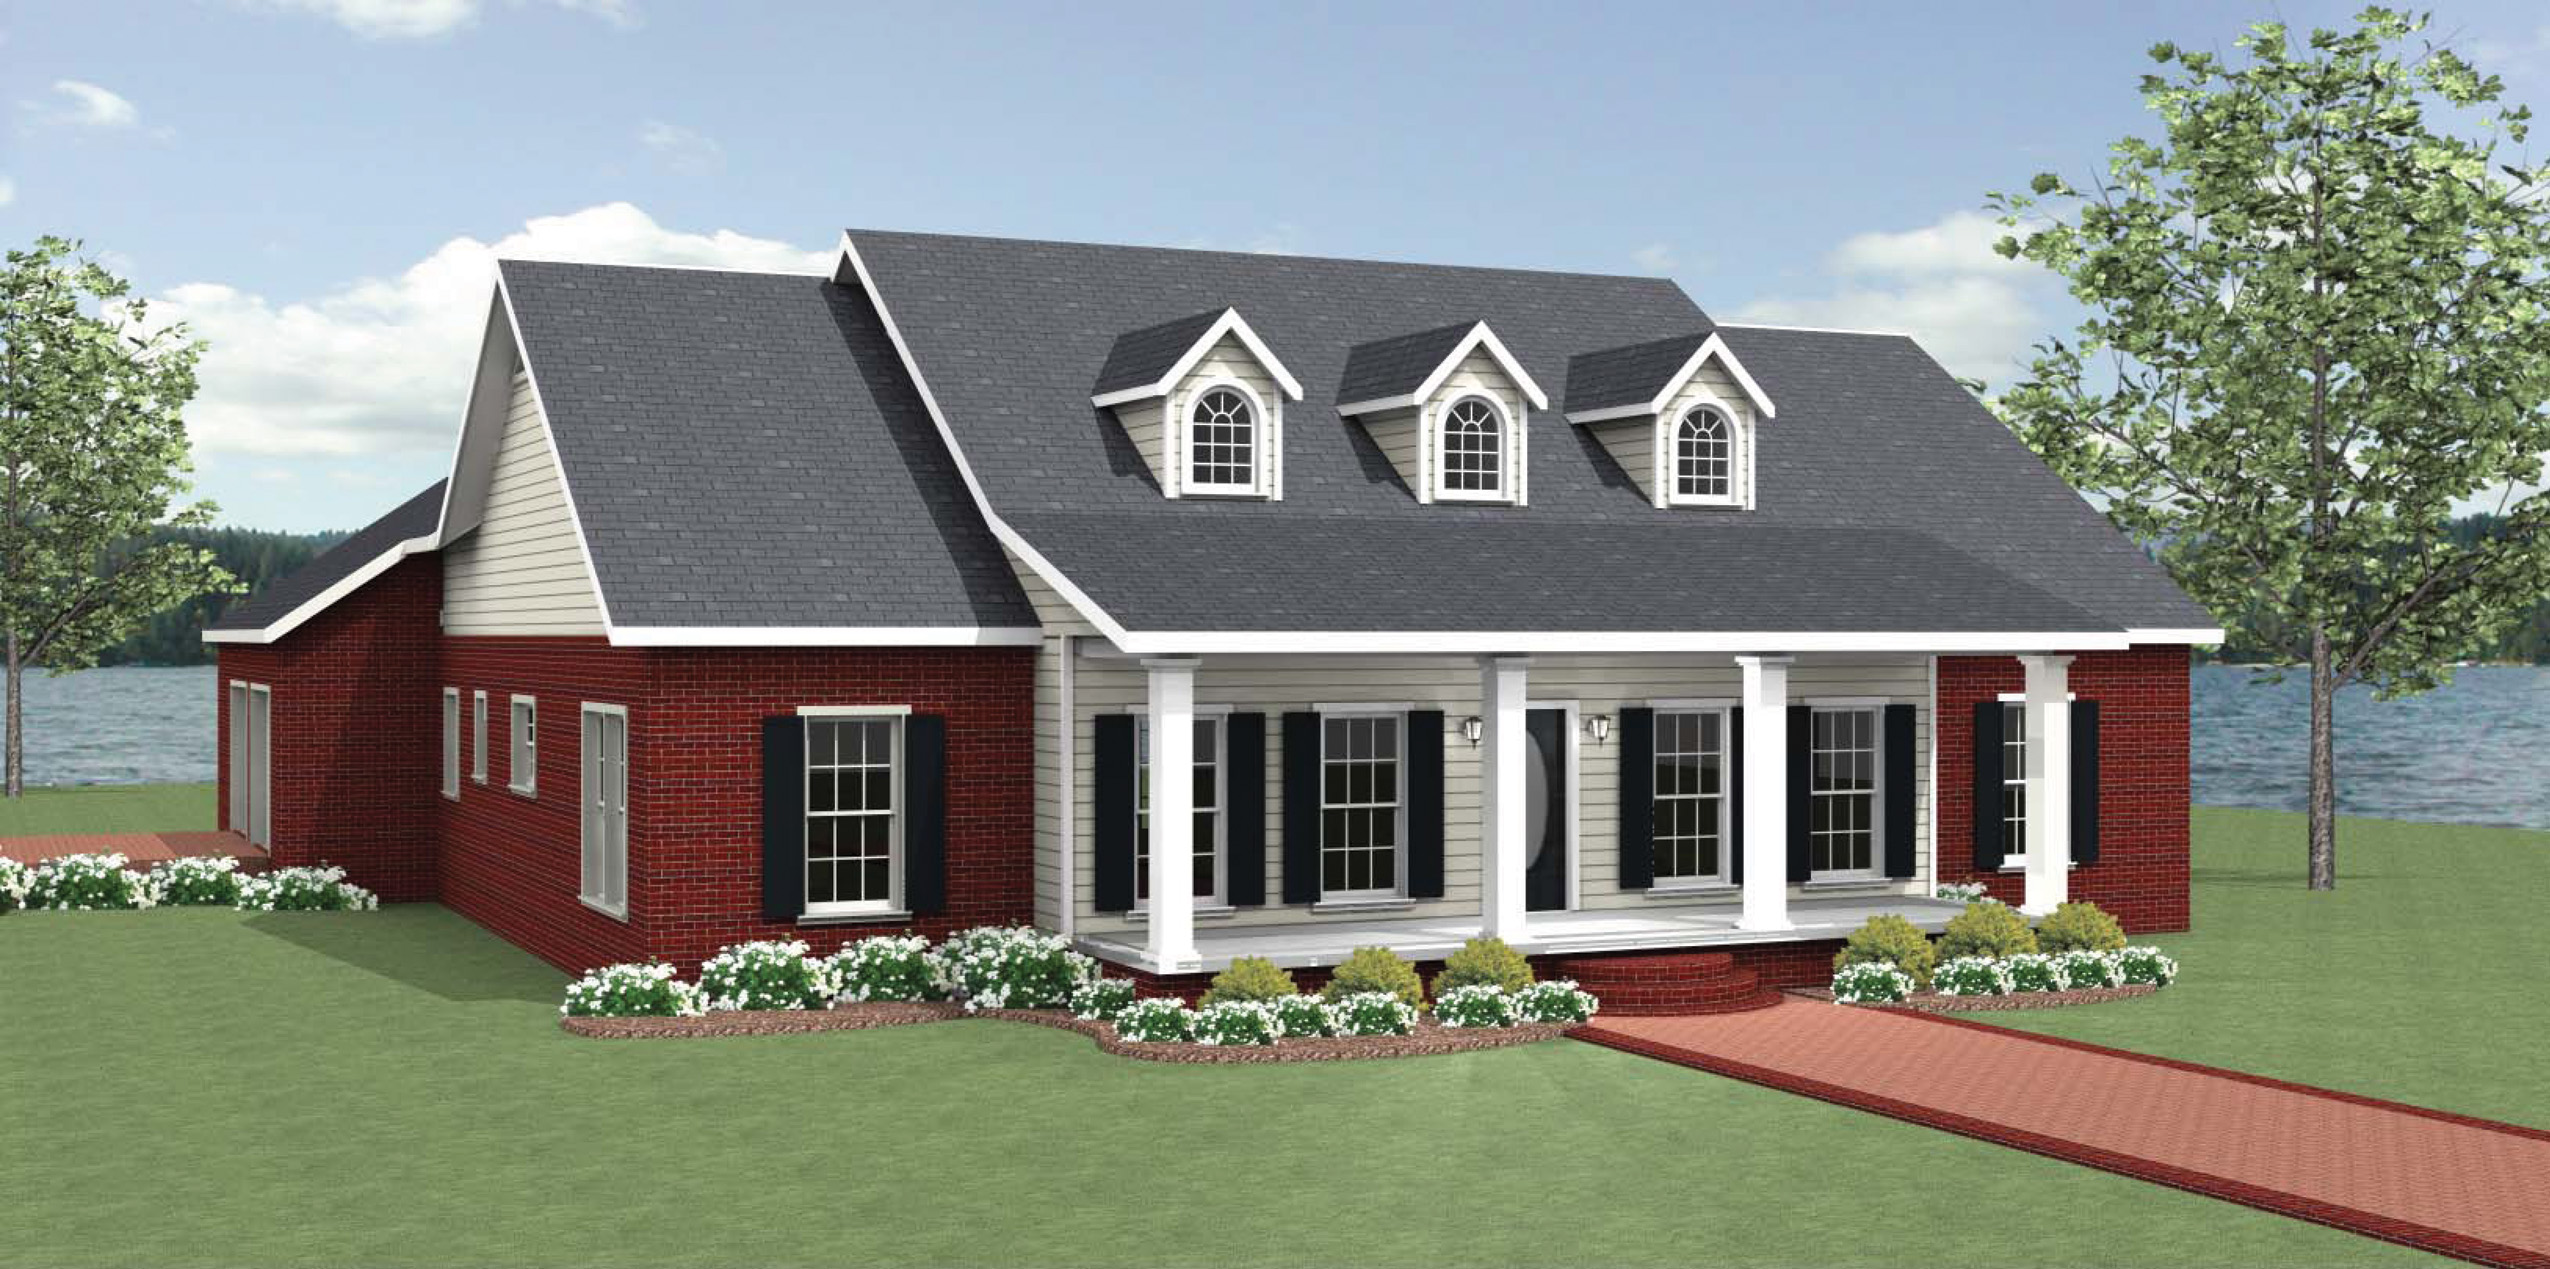 Open and spacious home plan 2593dh architectural for Spacious house plans